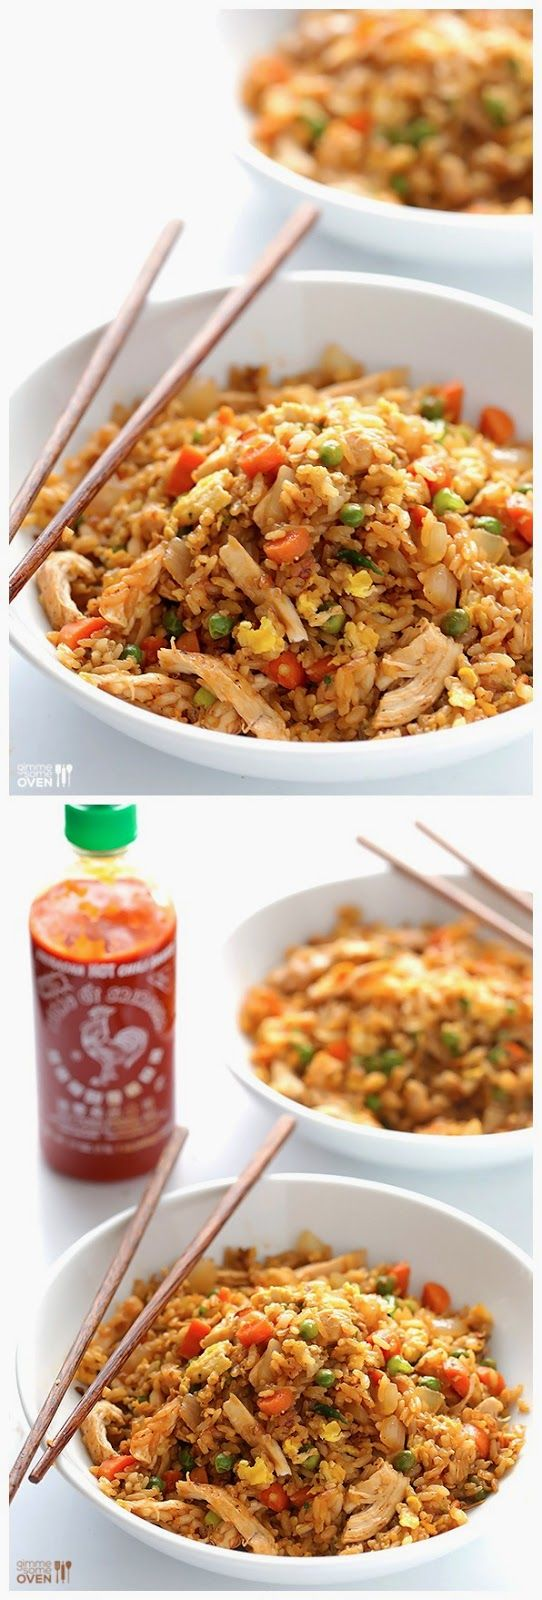 Sriracha Fried Rice [loved this. Very quick and easy. Cut recipe in half, still plenty of food.]